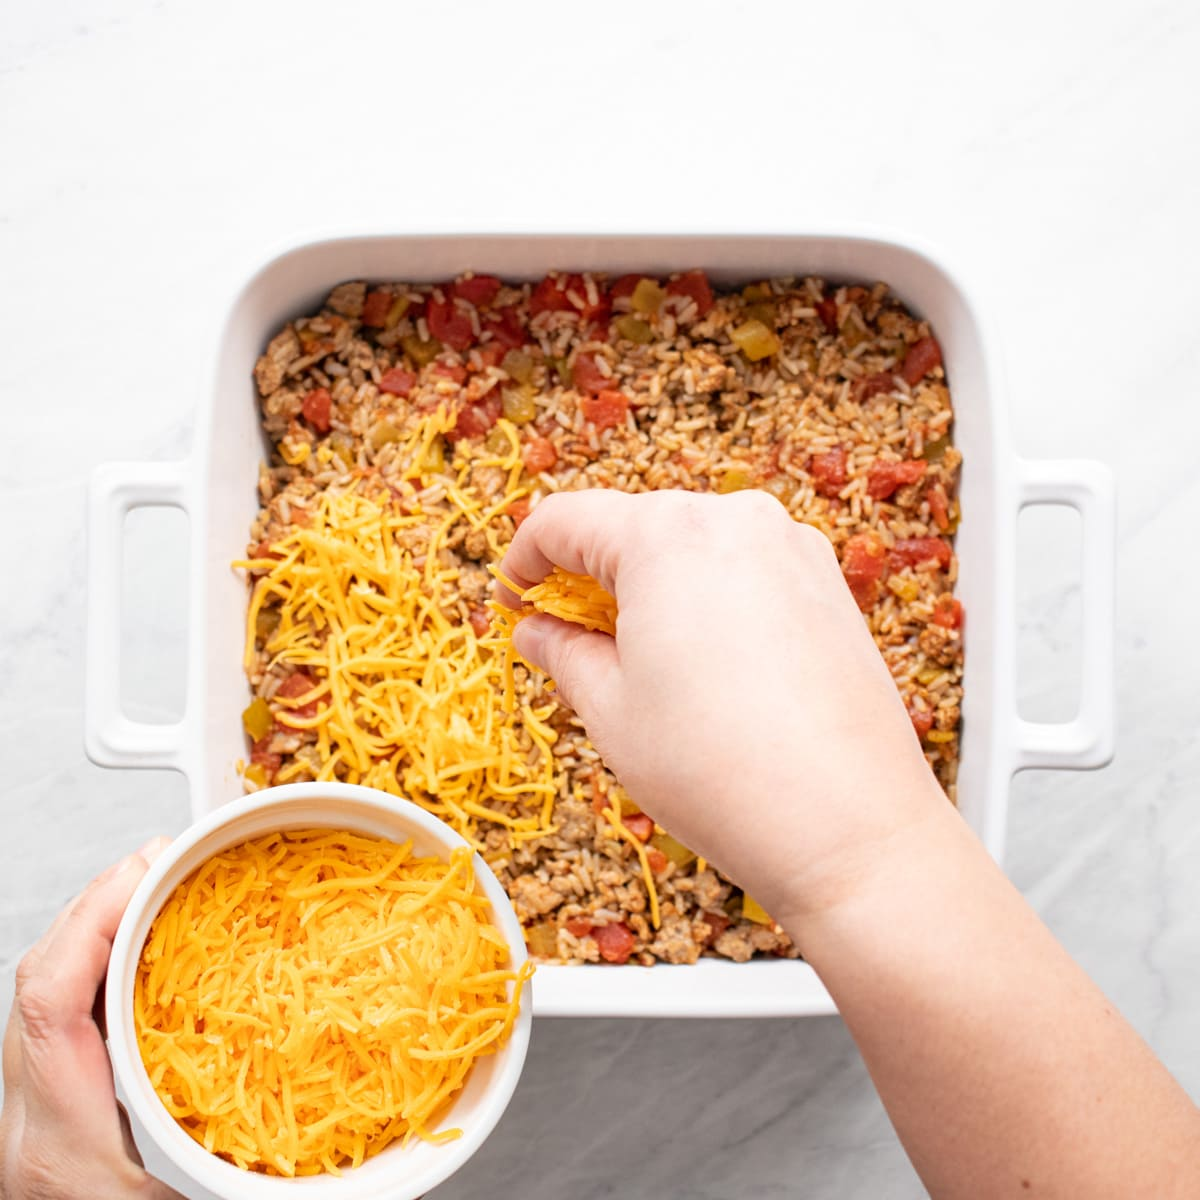 Sprinkling shredded cheddar cheese onto brown rice and turkey mixture in baking dish.